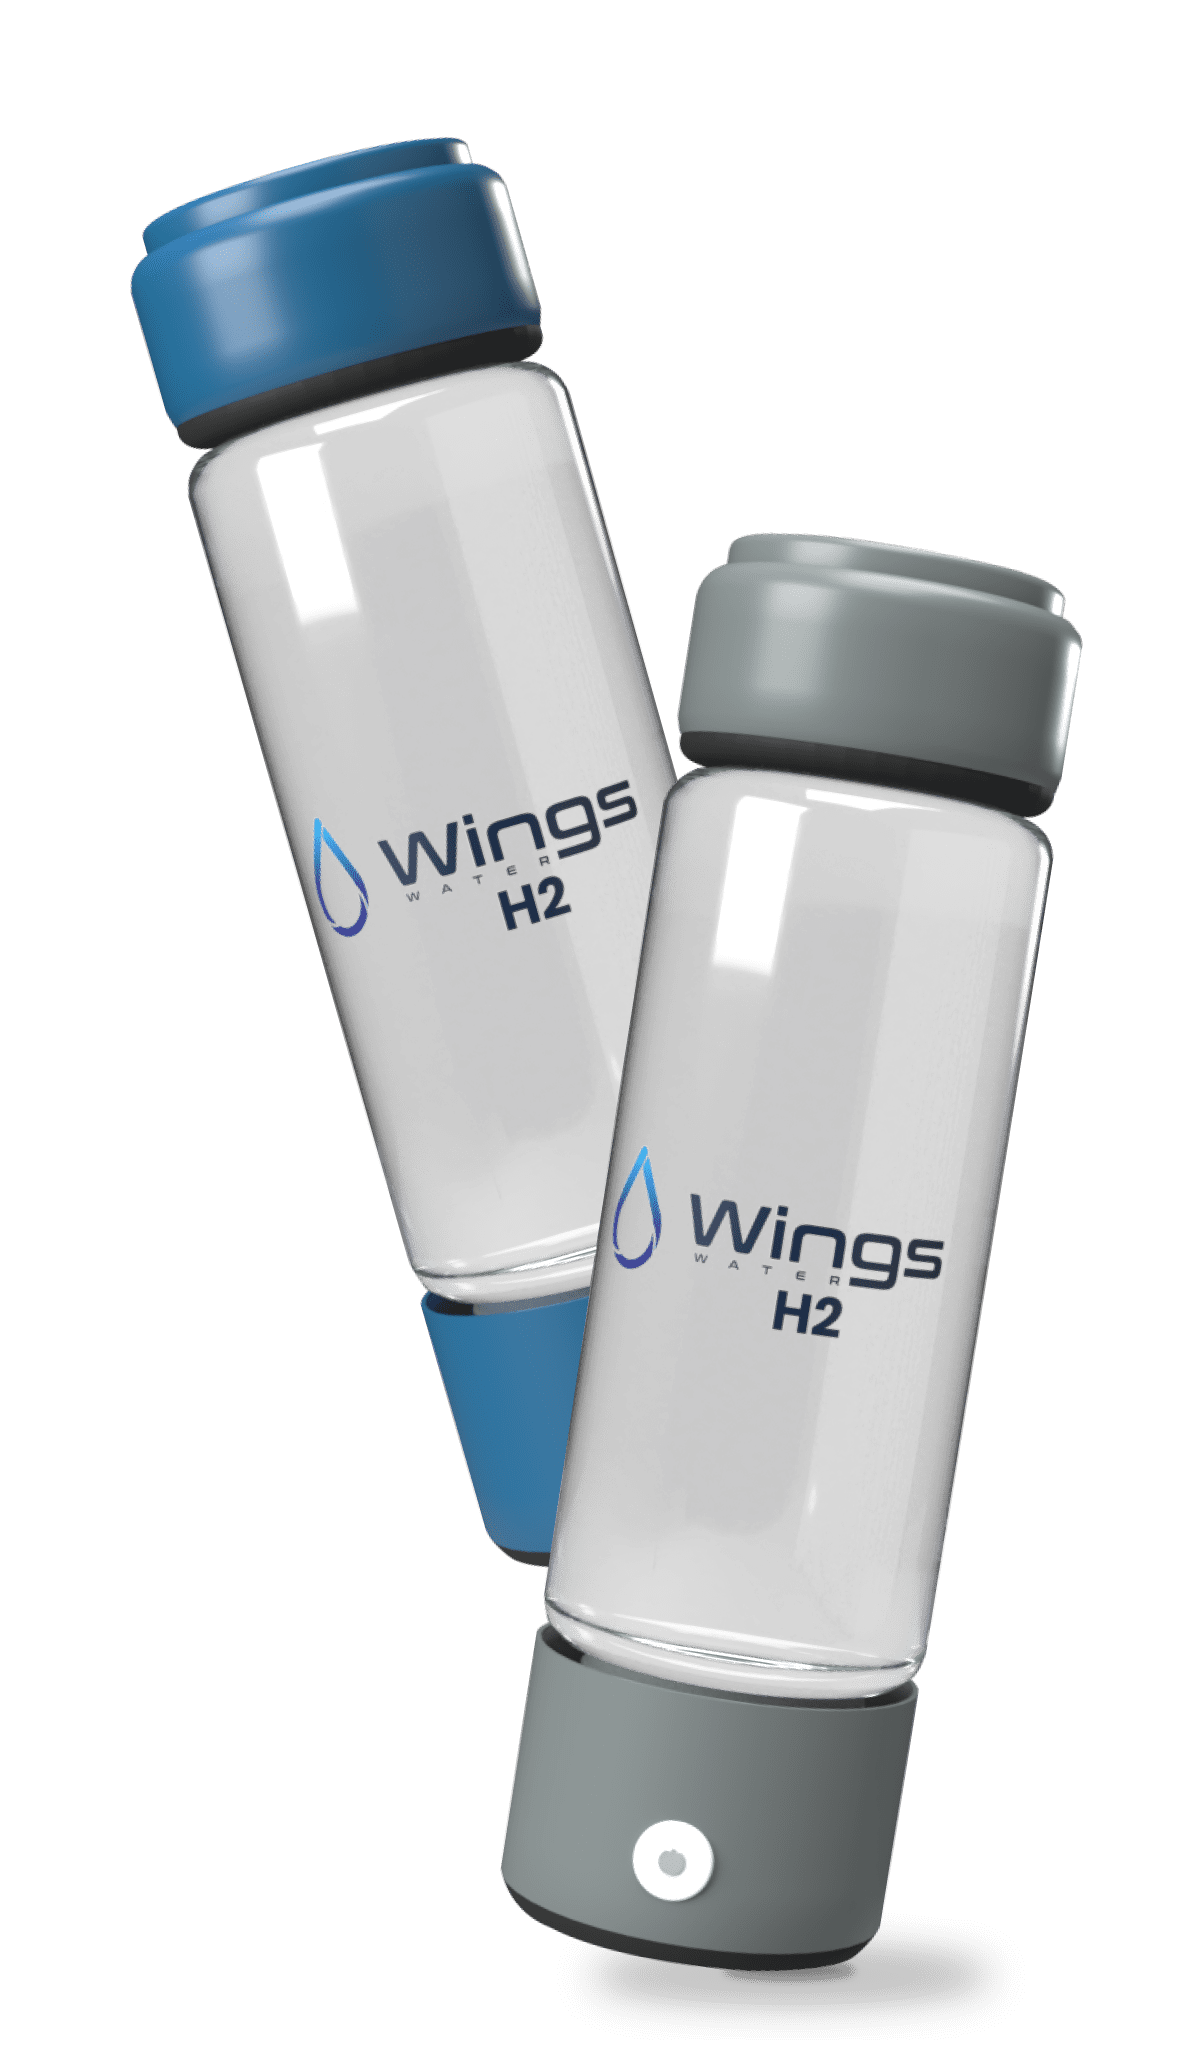 Wings Water H2 Botellas